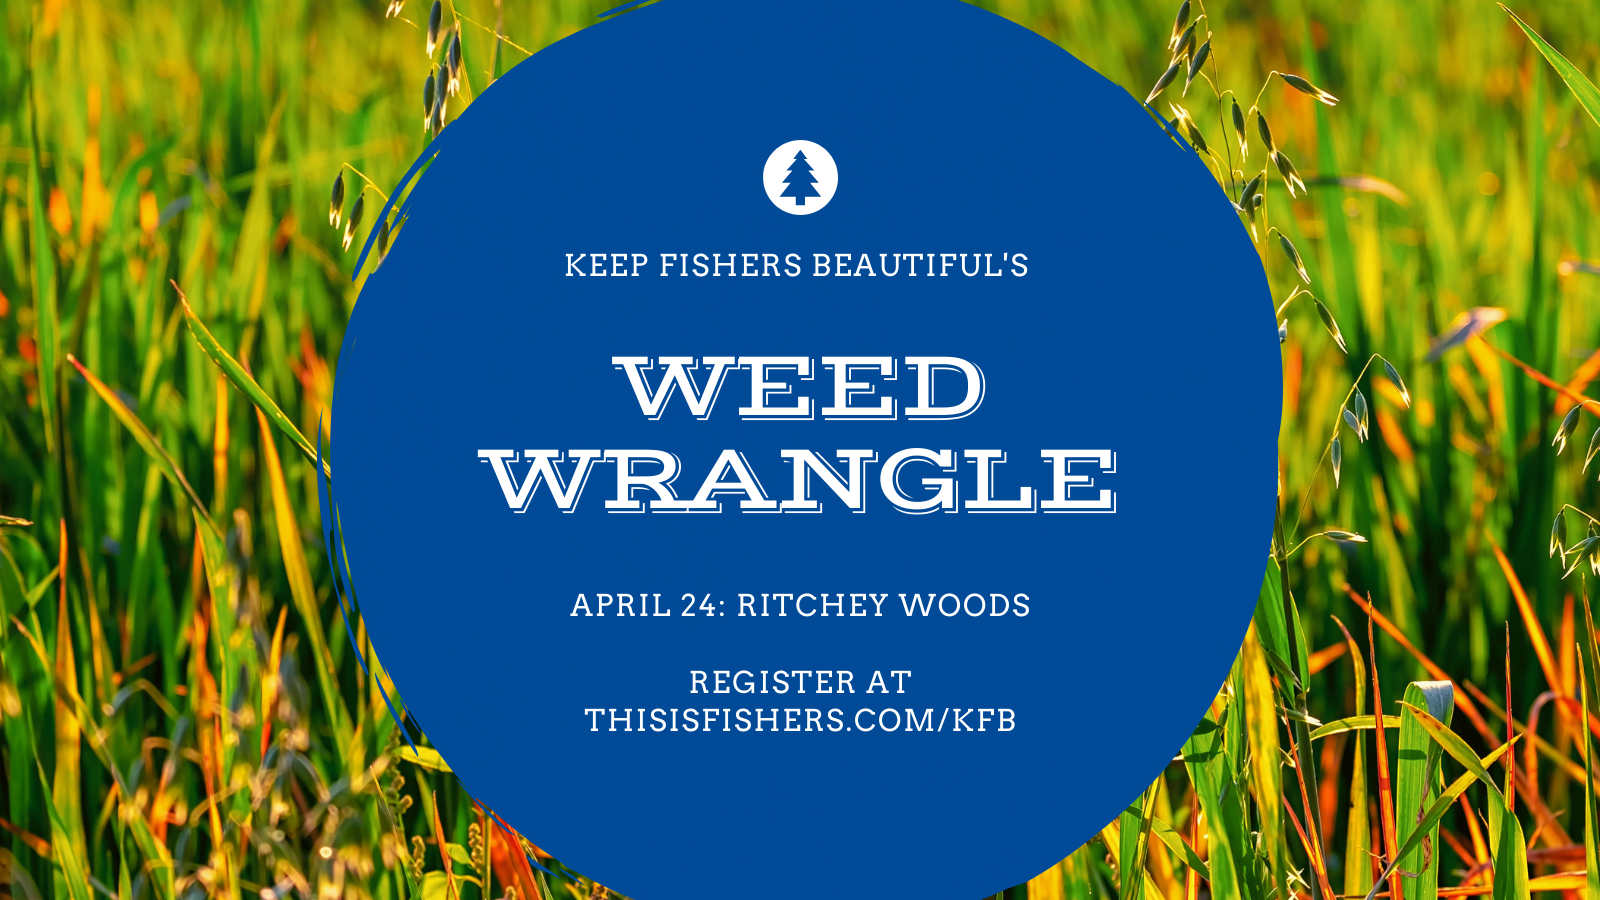 keep fishers beautiful's weed wrangle april 25 ritchey woods nature preserve register at thisisfishers.com/kfb